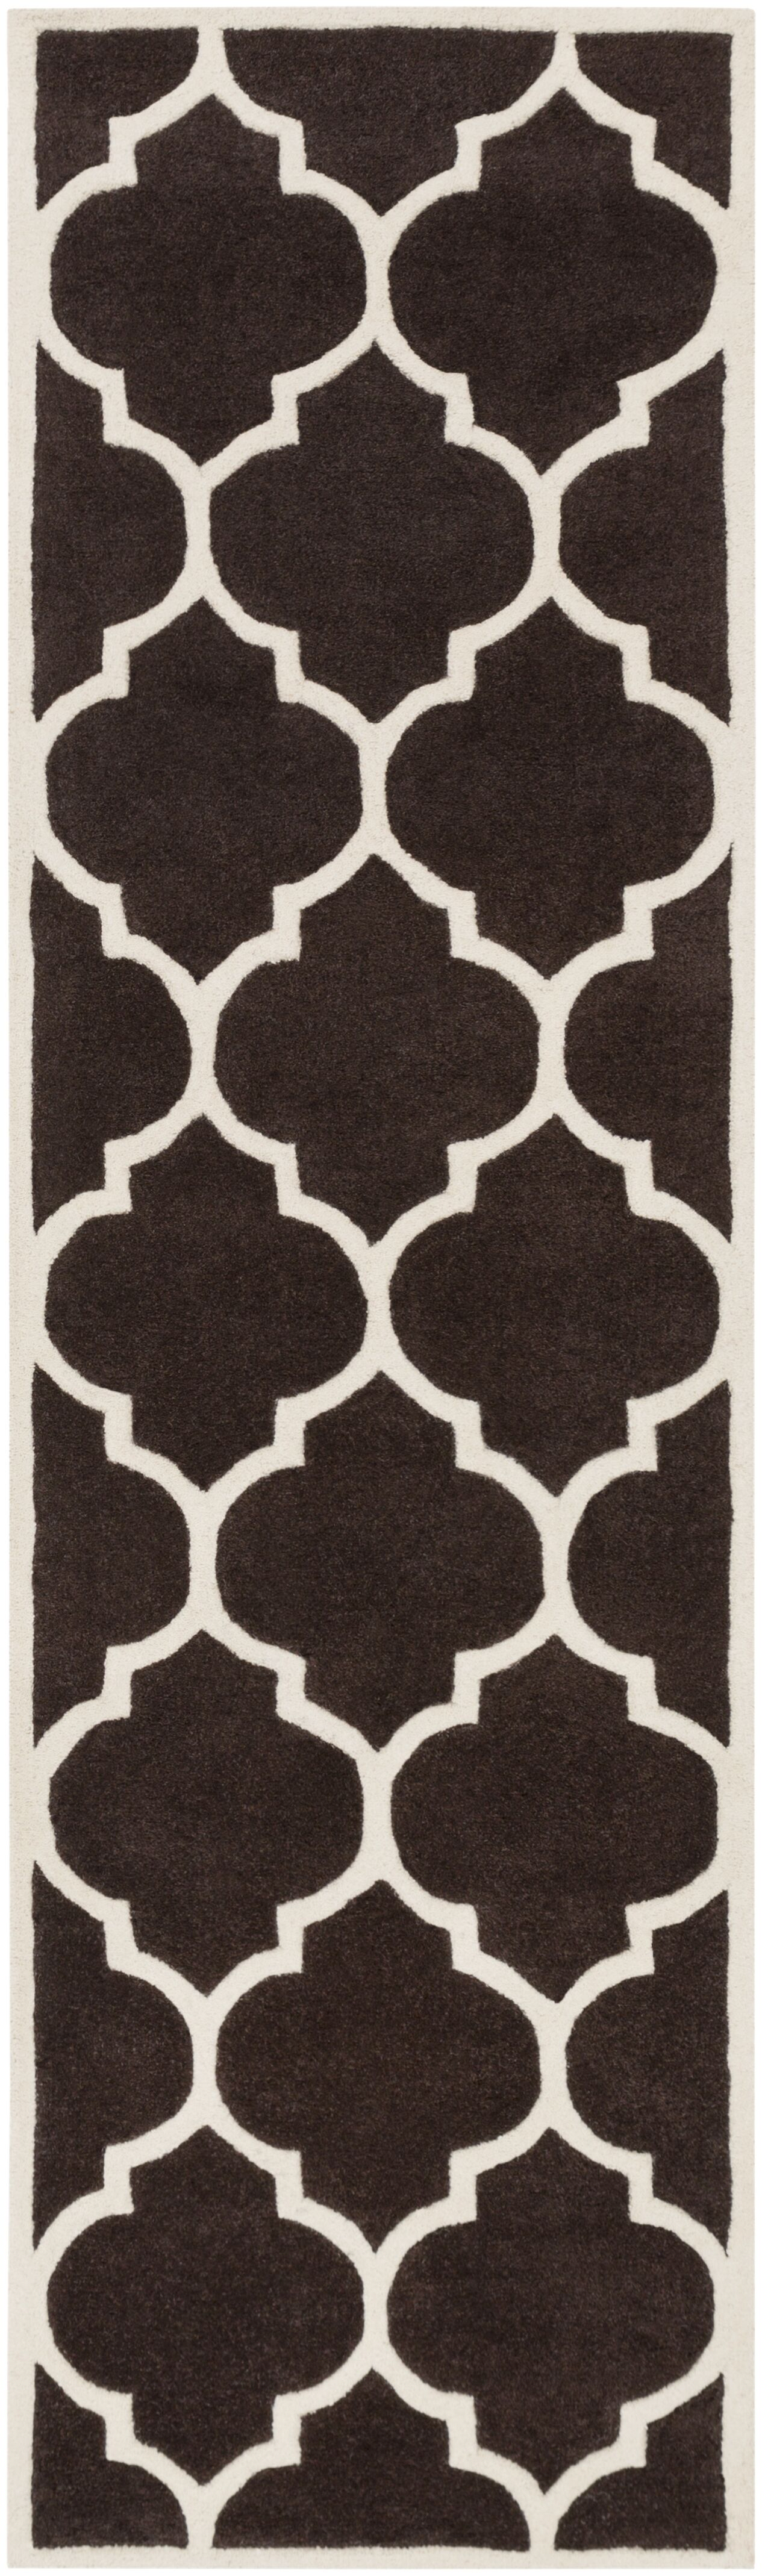 Ayler Brown Geometric Area Rug Rug Size: Runner 2'3